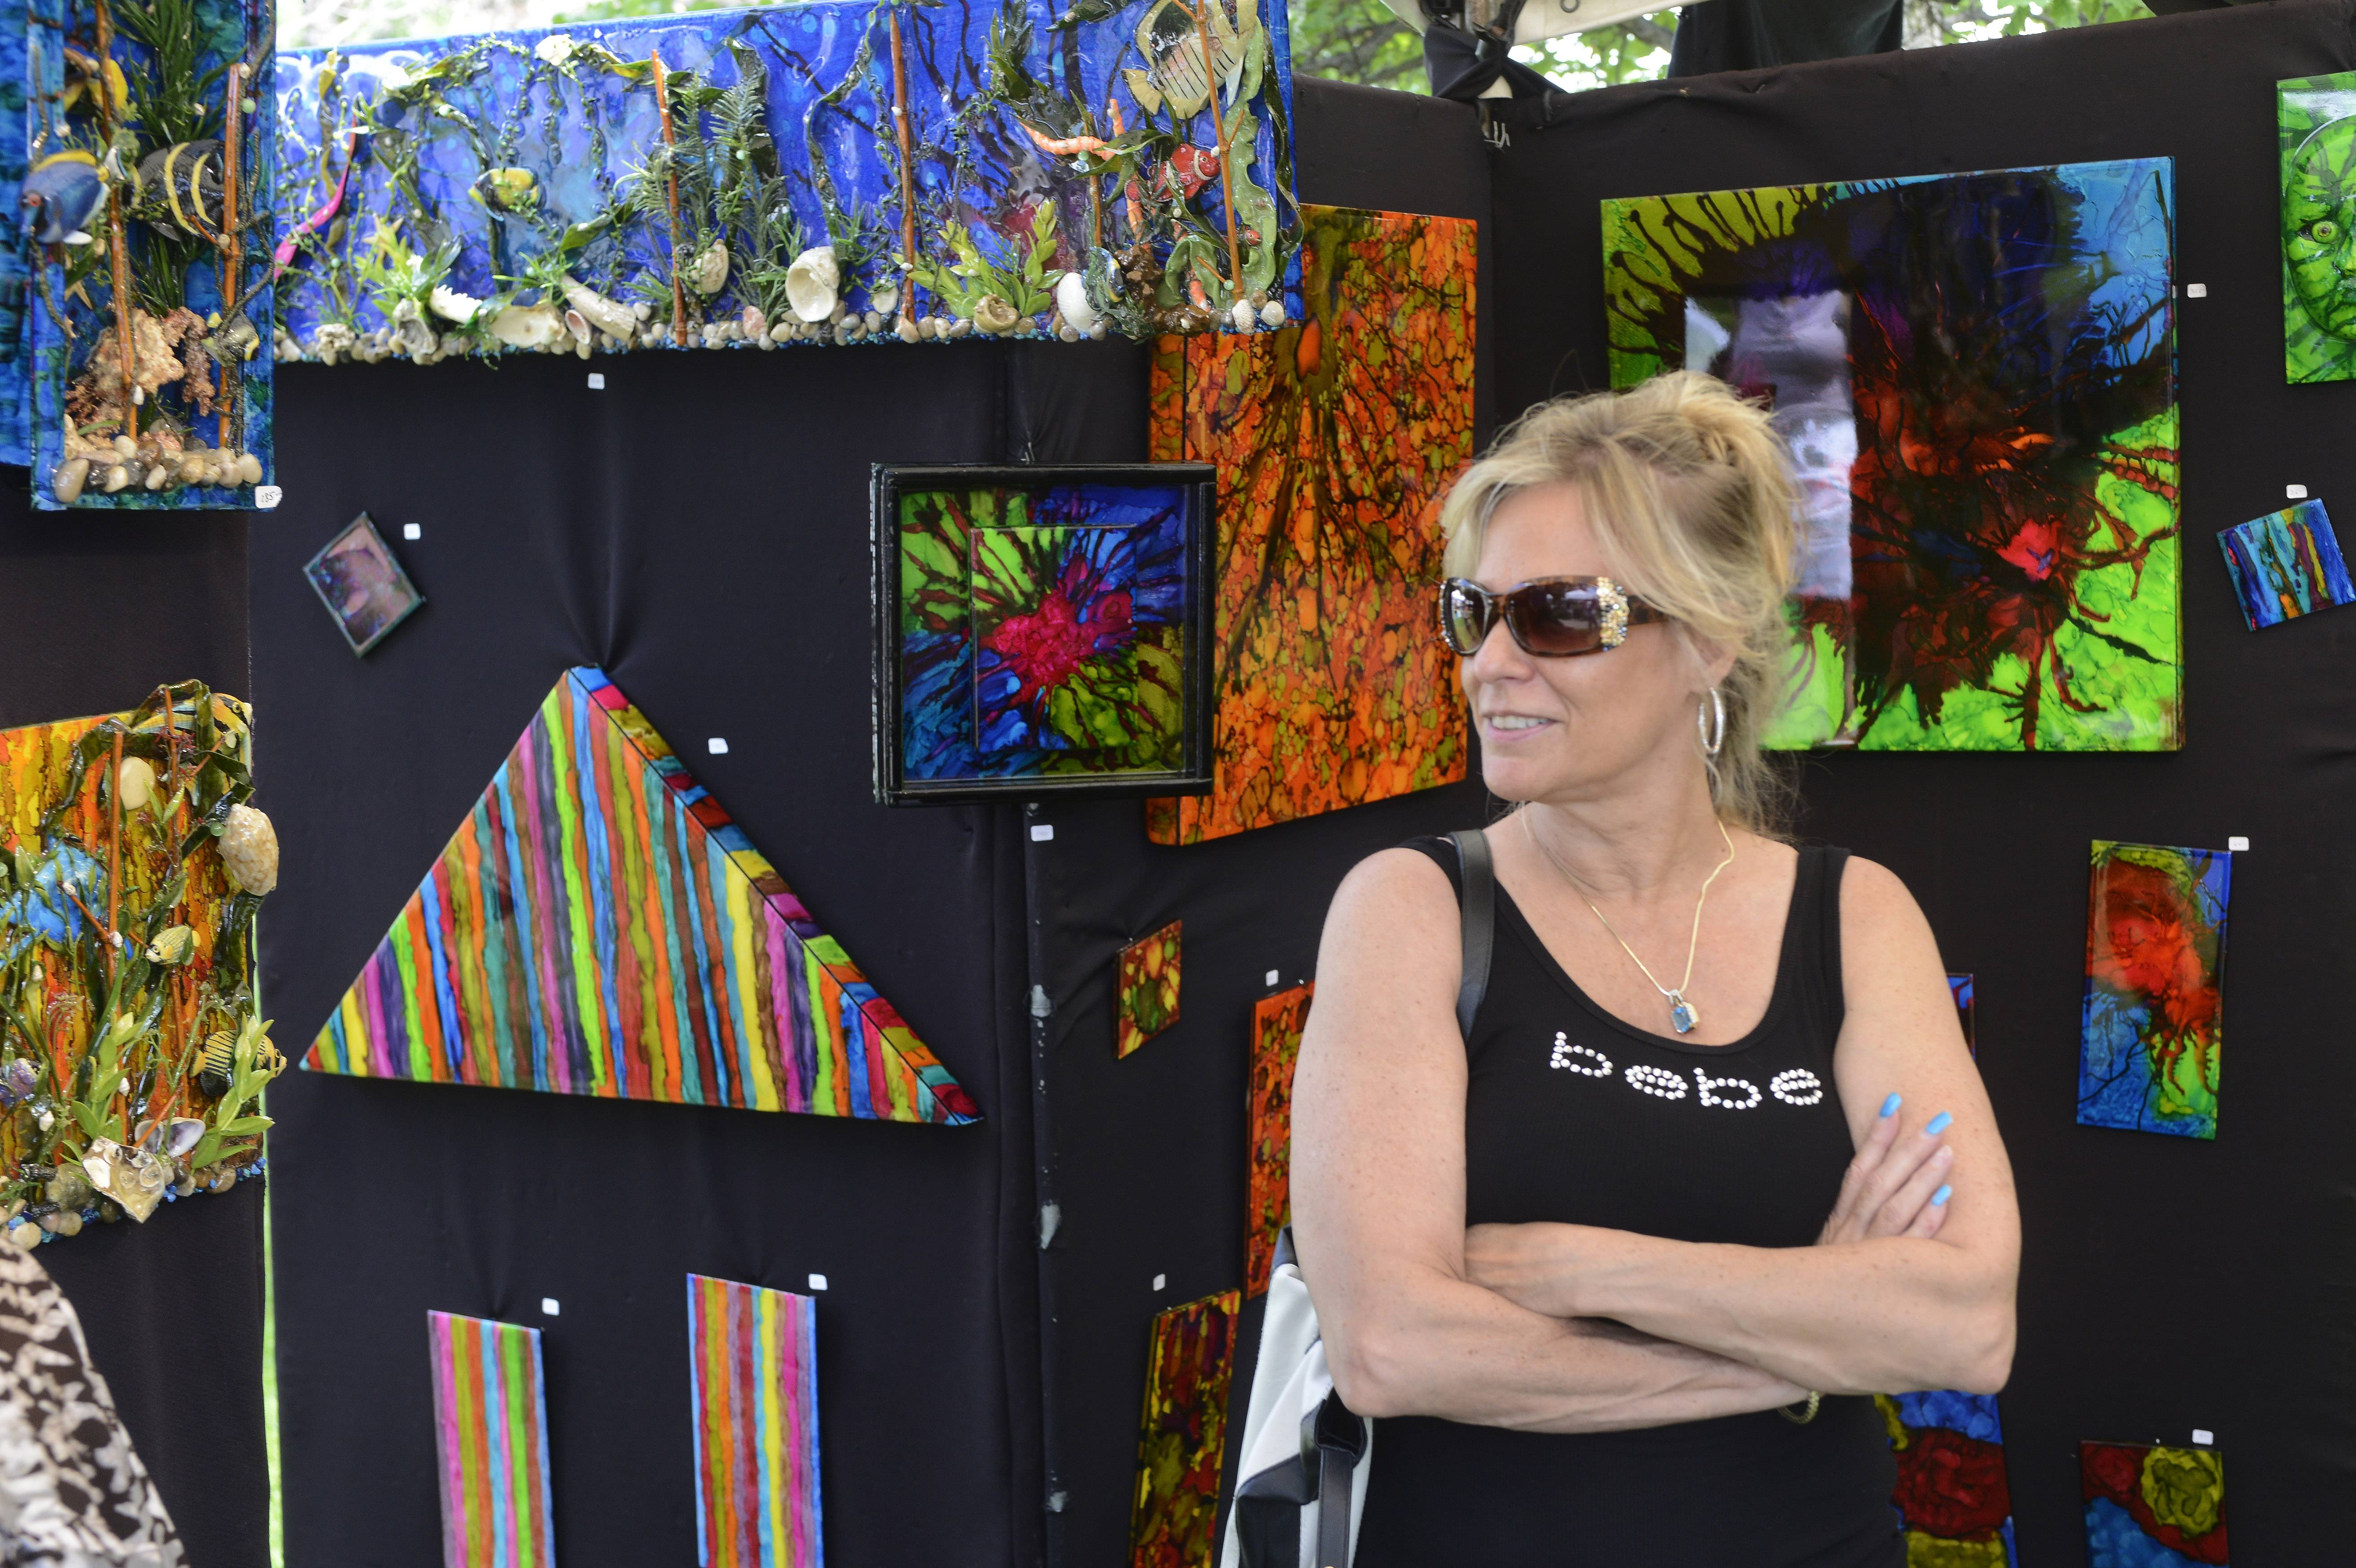 Veronica Payne of South Elgin views mixed media 3D artwork by Robert Aebi of Lathrop, Missouri, during the Arts in Bartlett Festival of the Arts at Bartlett Park Saturday.